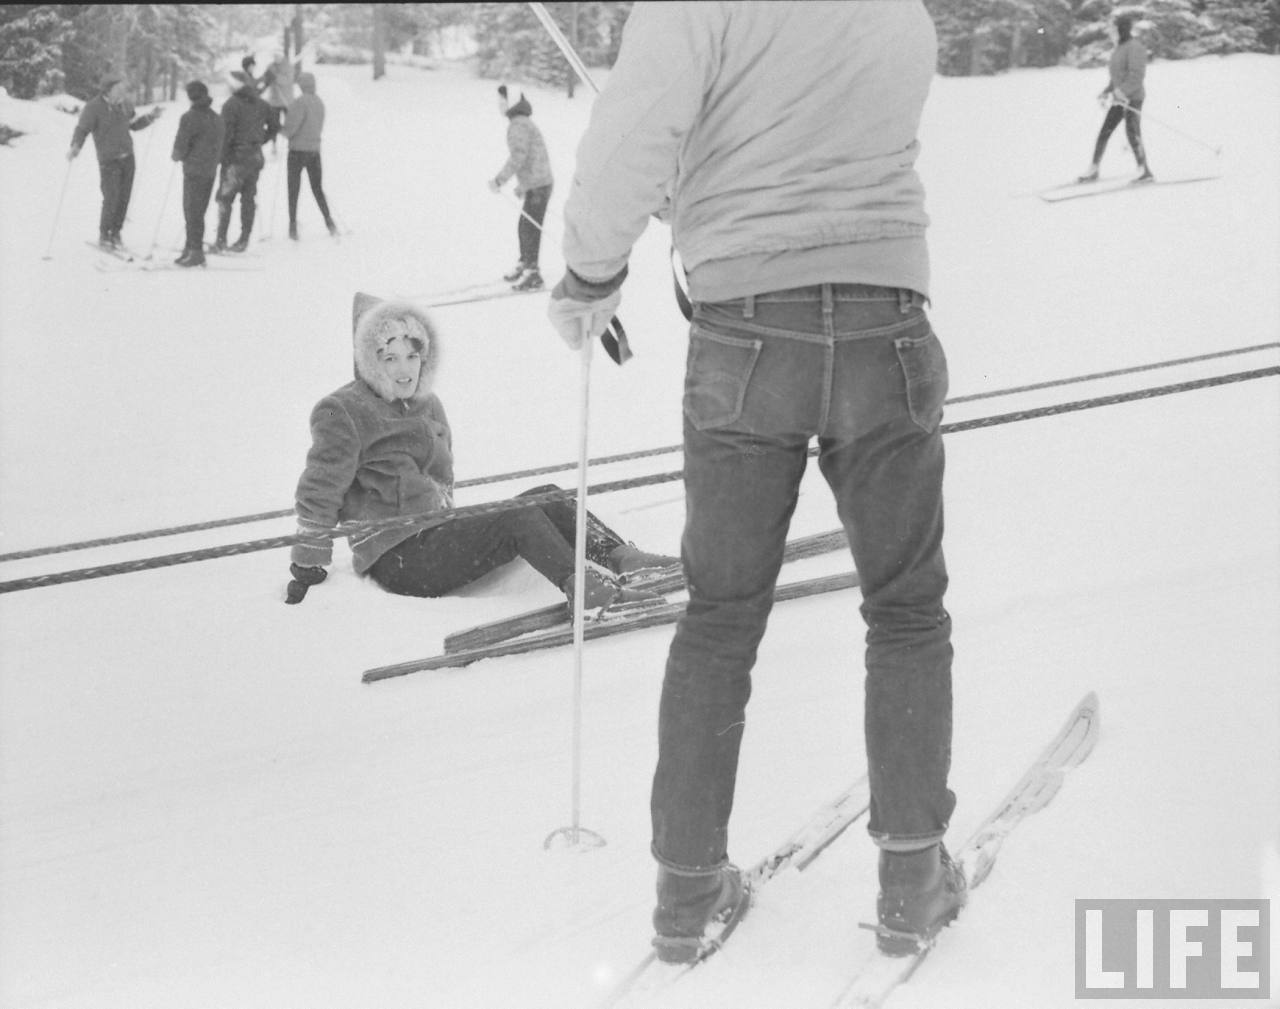 Skiing in Lee Jeans. 1961Freaky. This post was queued days ago and then as it published it snowed hard.